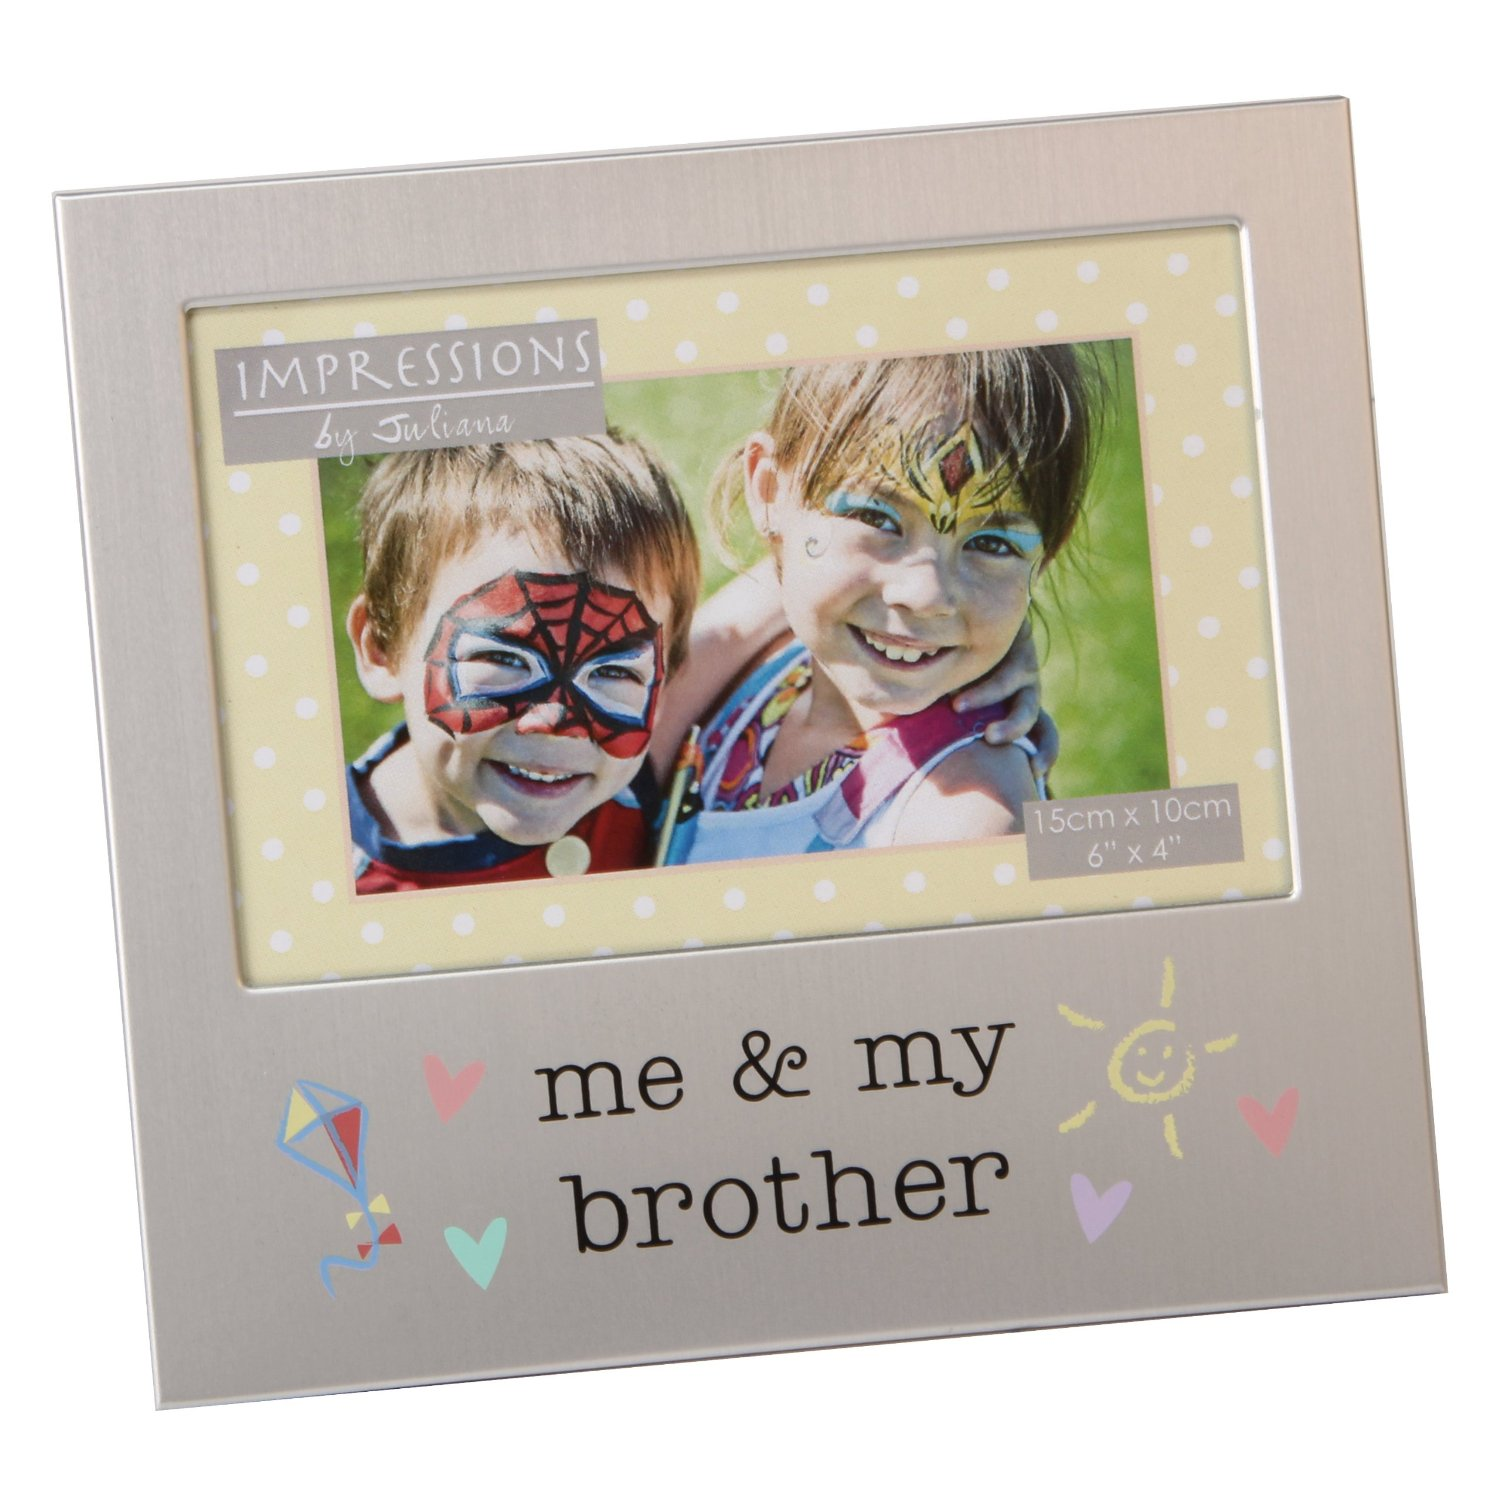 Me My Brother 6 X 4 Photo Frame Gifts